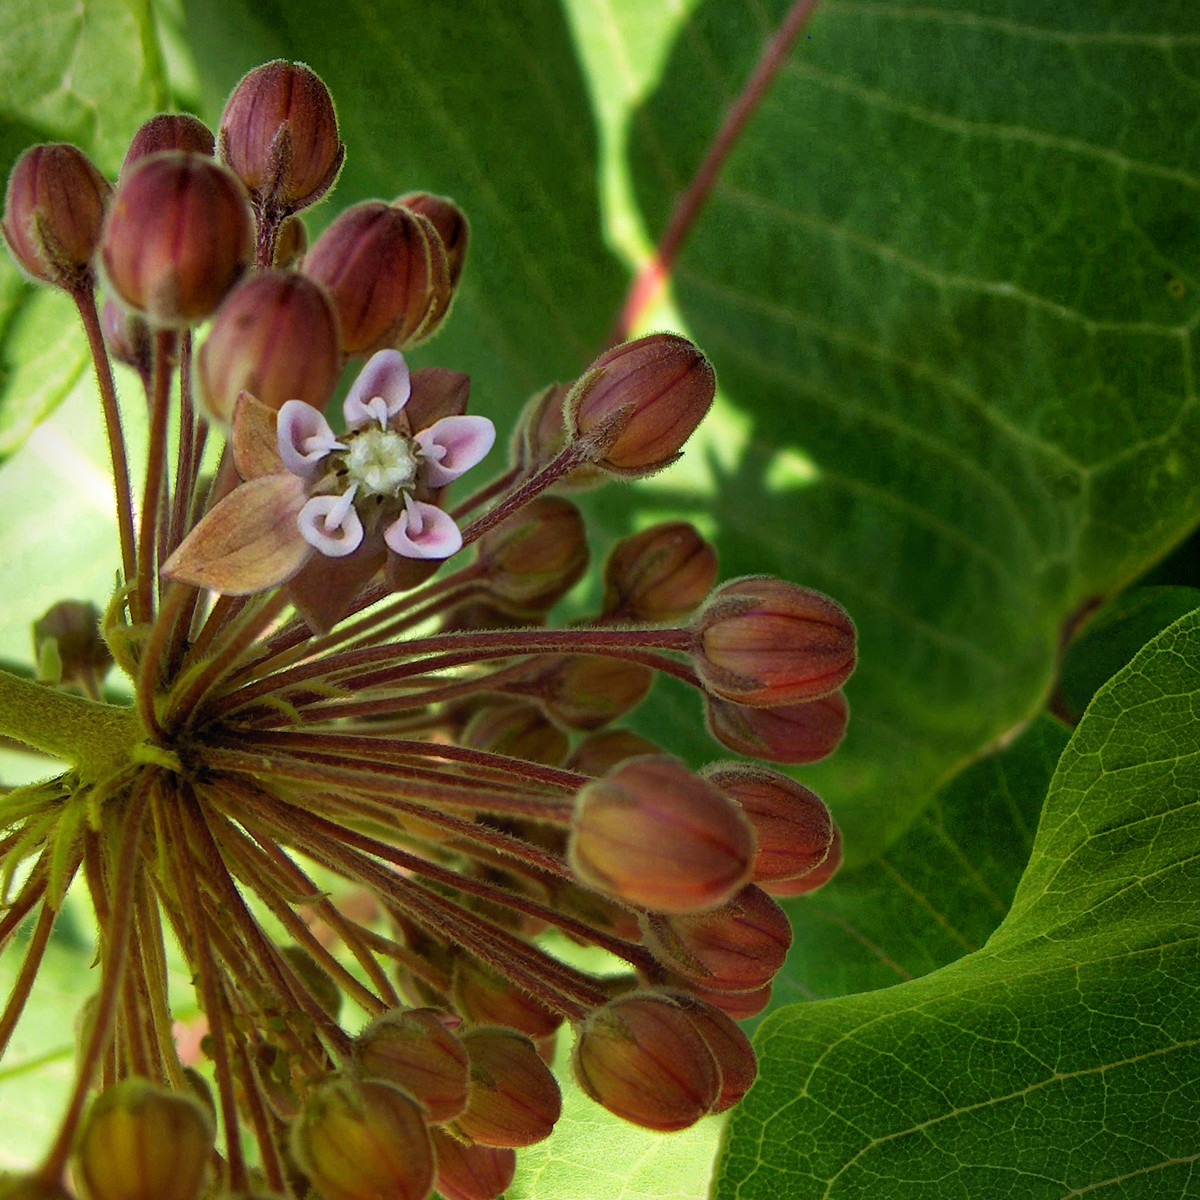 MILKWEED UMBEL BEGINNING TO BLOOM